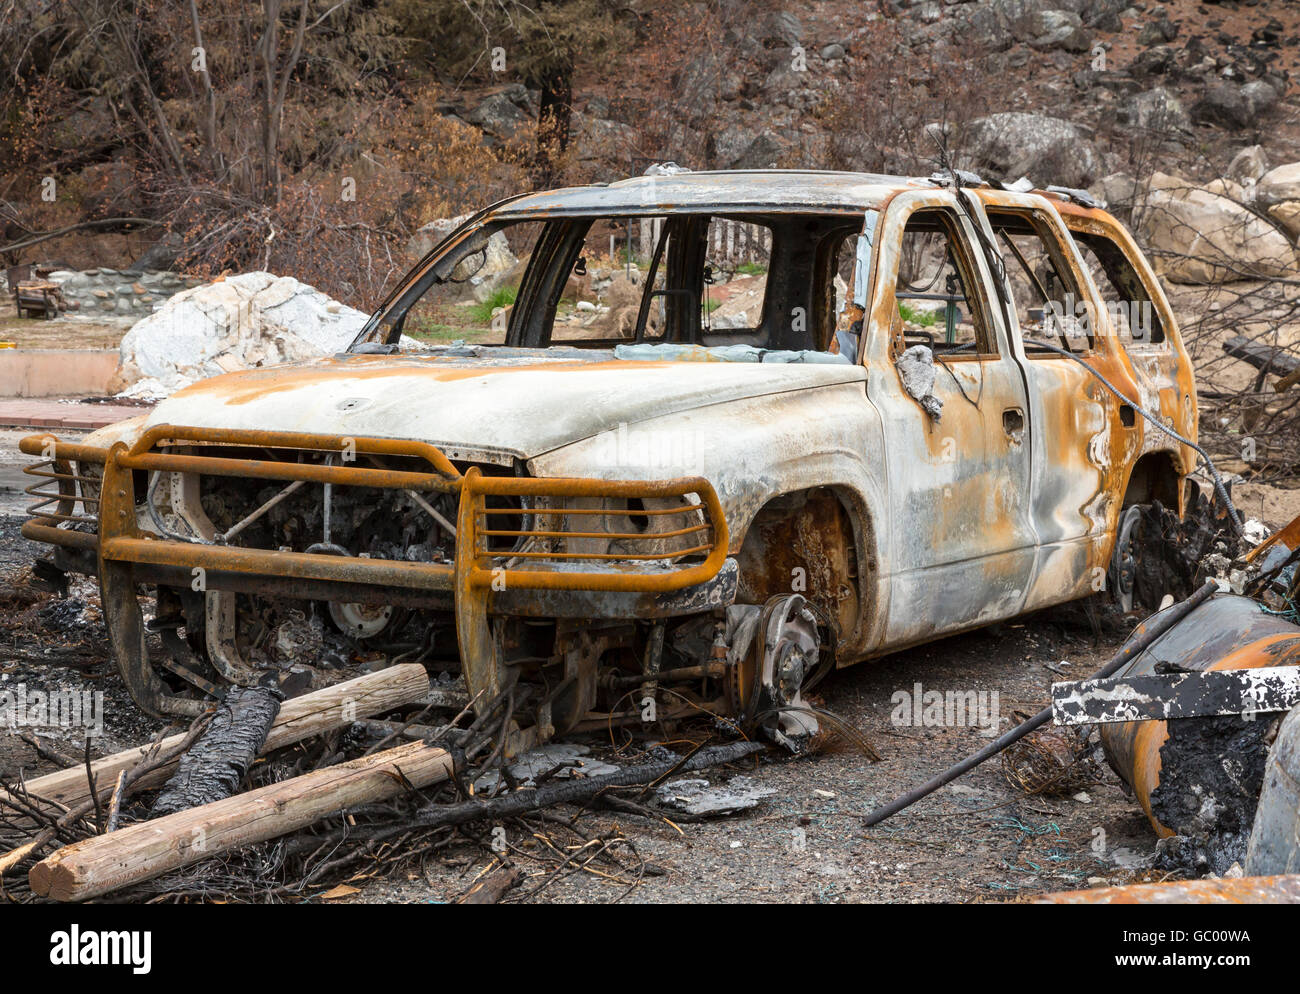 Burned automobile after a natural disaster wildfire. Personal property destroyed in a forest fire. - Stock Image